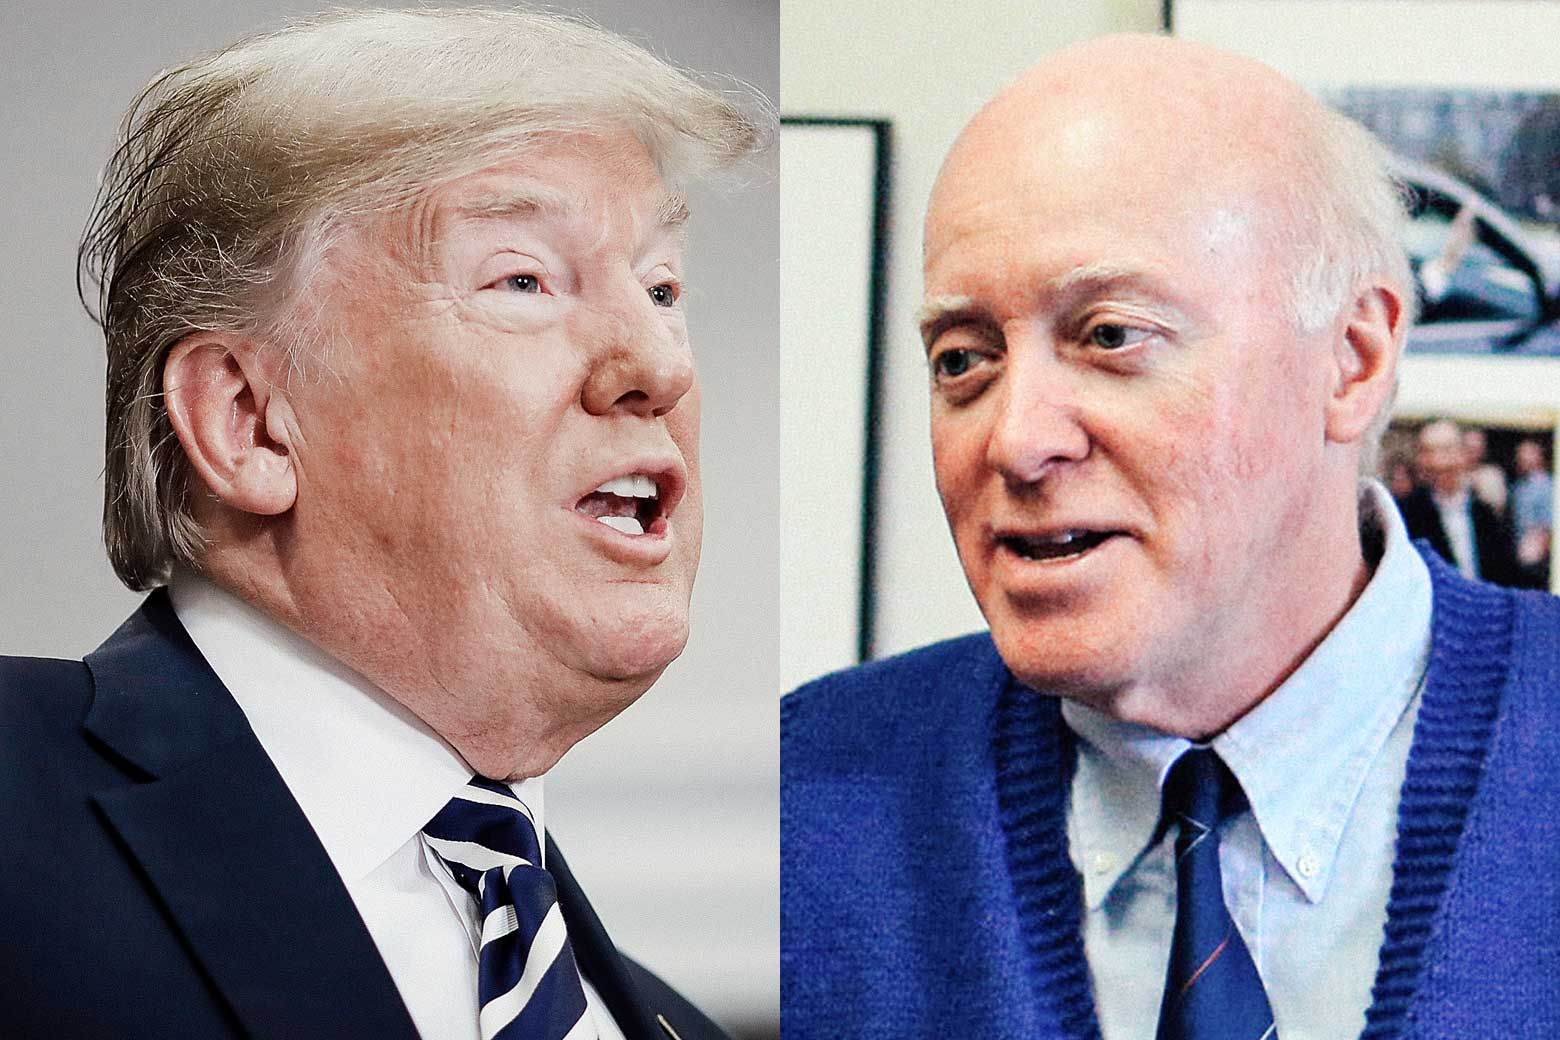 U.S. President Donald Trump and New Hampshire Secretary of State Bill Gardner.